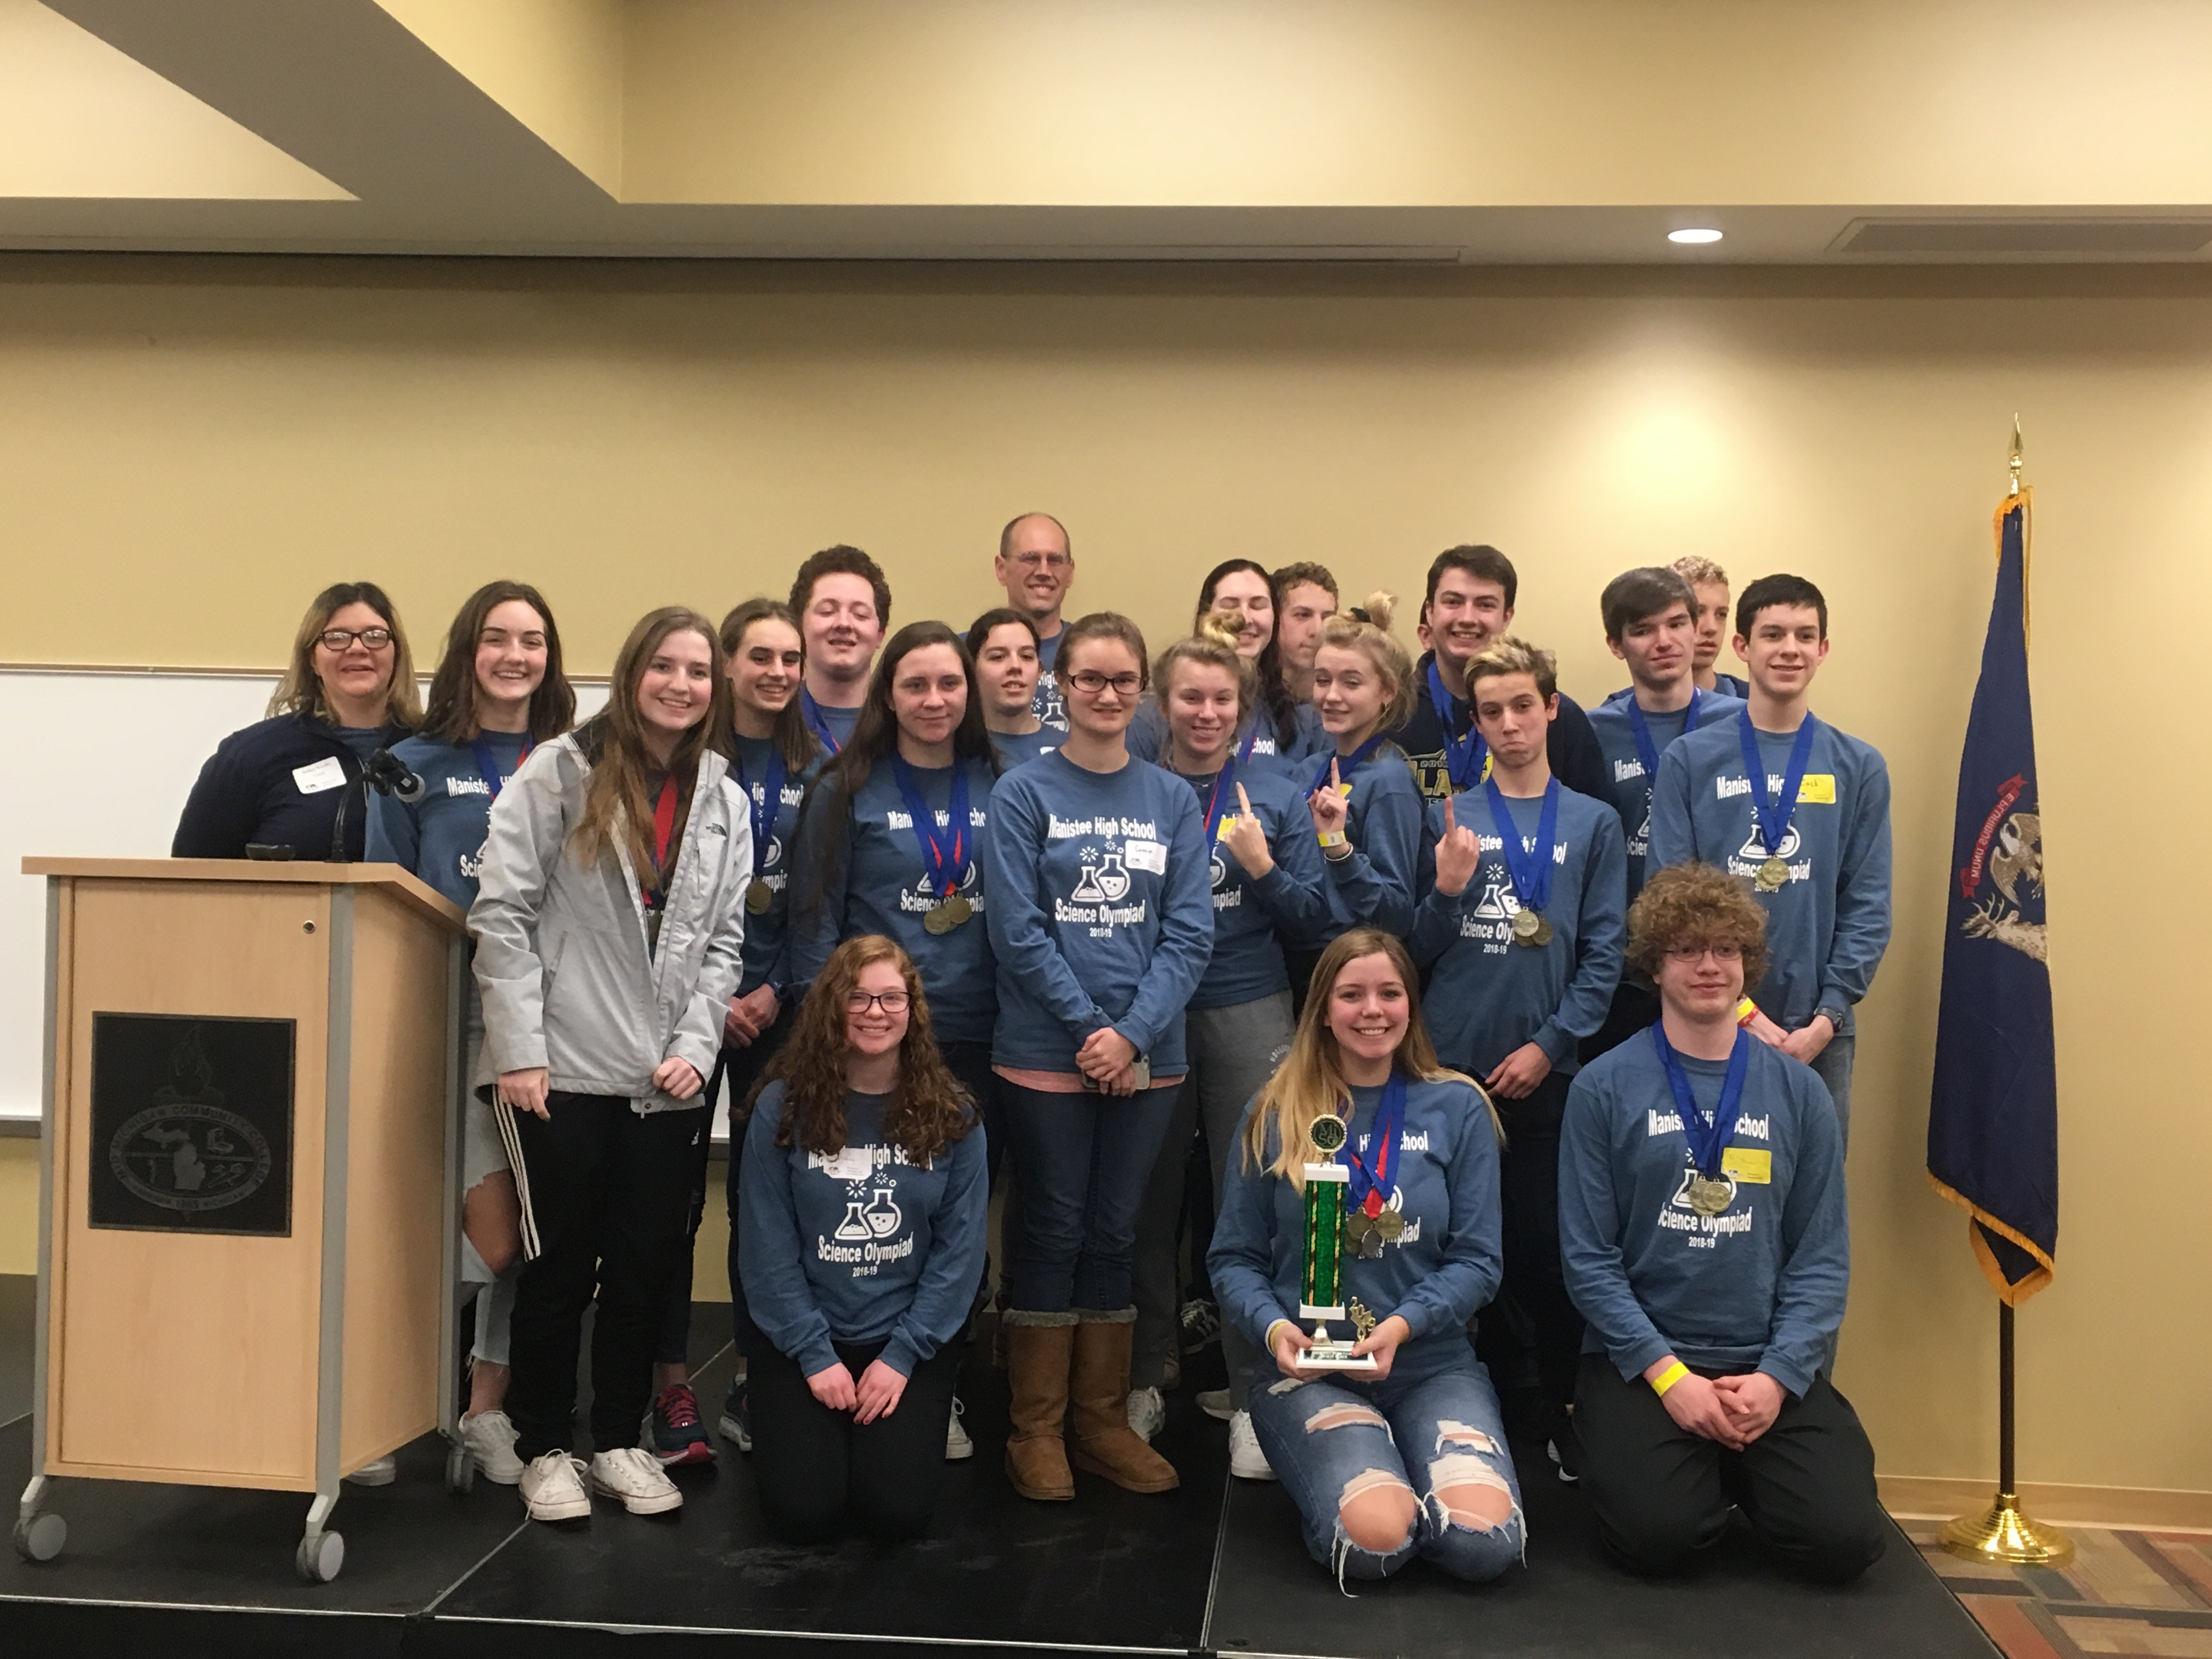 2019 Science olympiad team photo